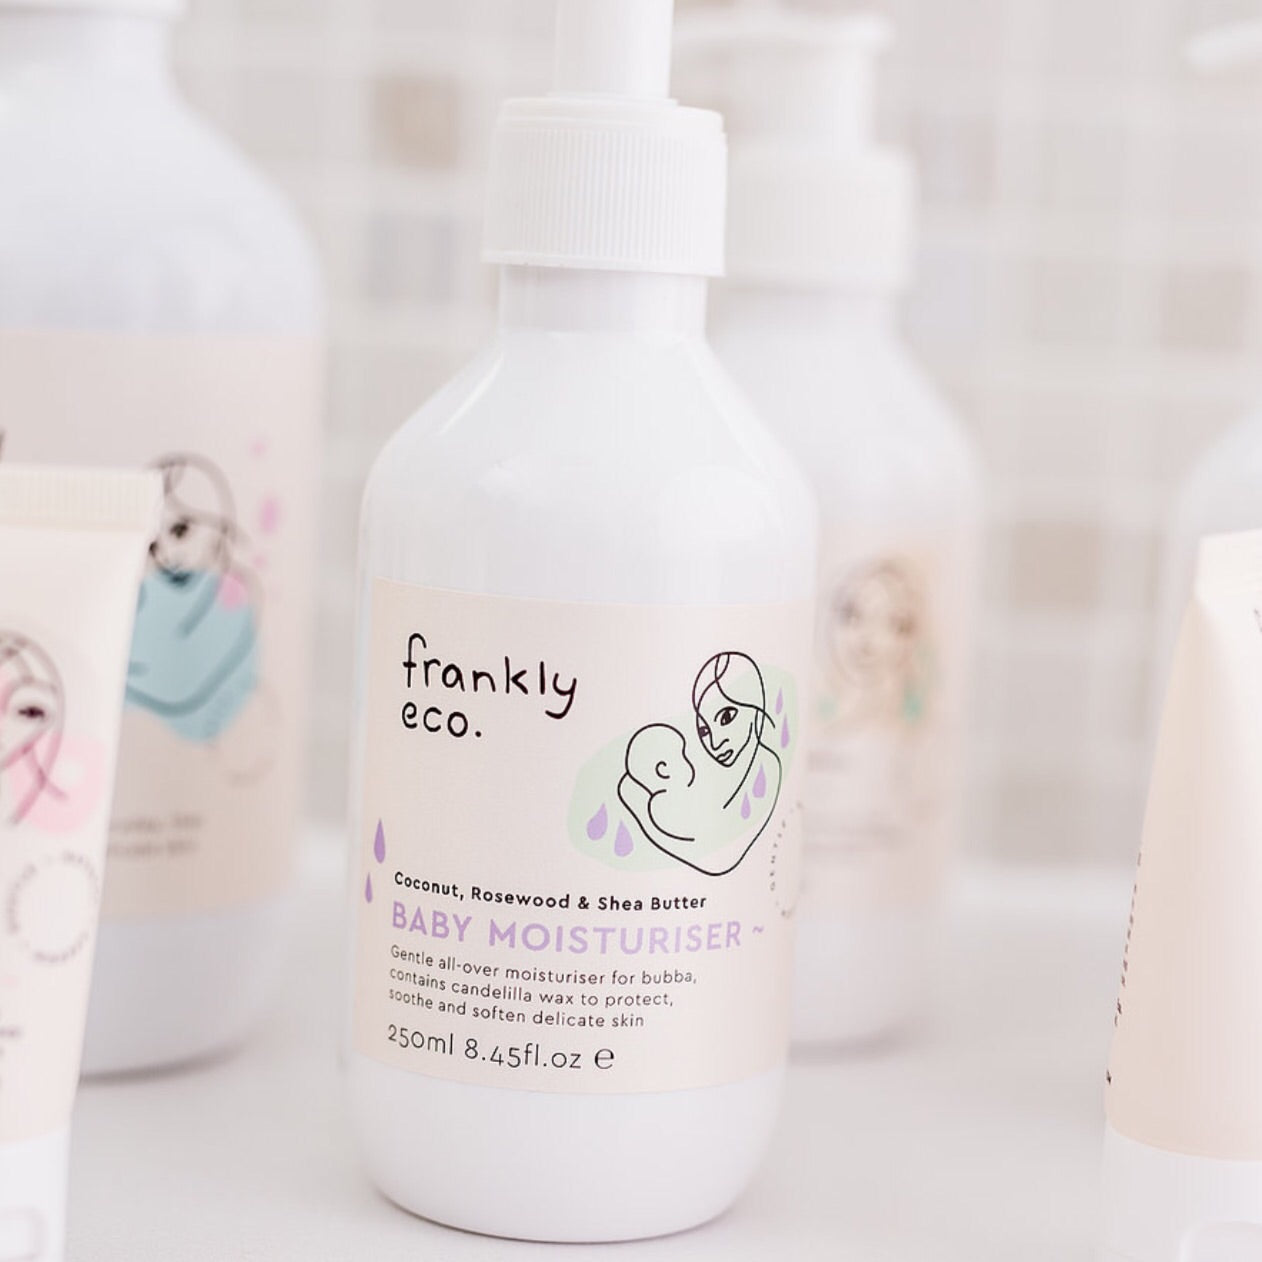 Frankly Eco. Baby Moisturiser 250ml